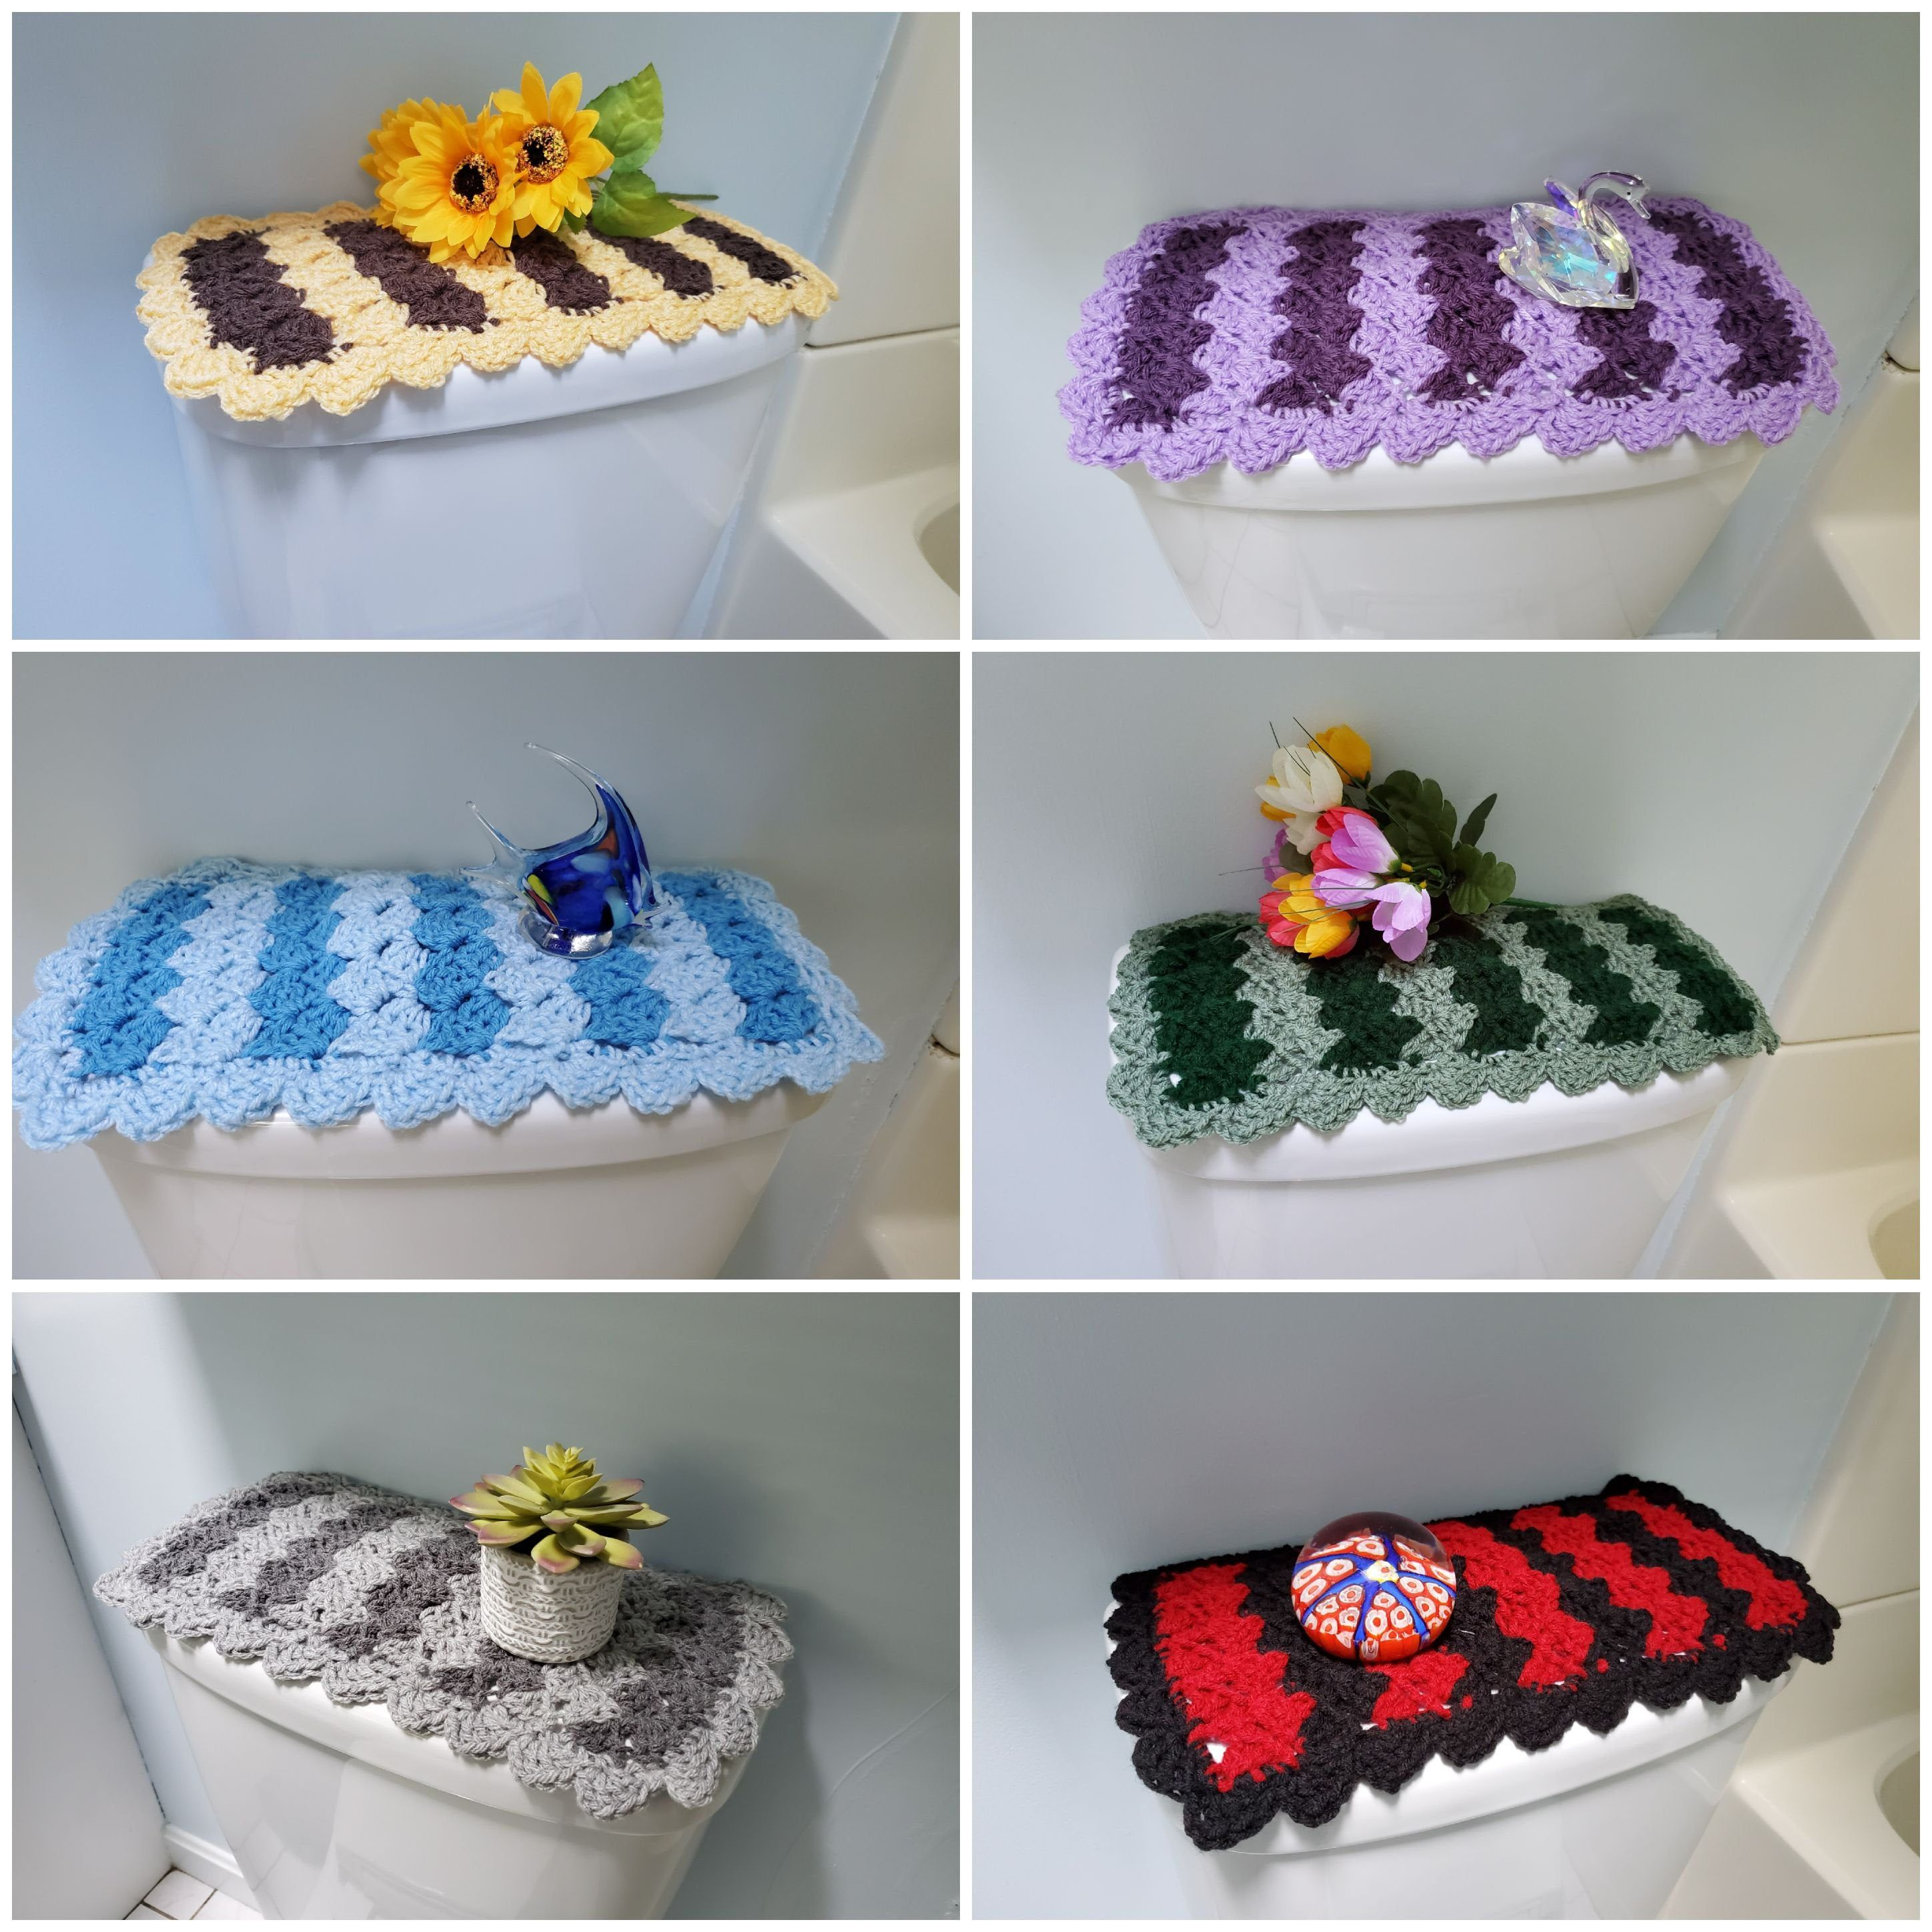 Toilet Tank Topper Crochet Toilet Tank Topper Bathroom Decor 6 Colors Ttt2a 2f Crafts To Make Sell Hobbies Crafts Crafts To Make